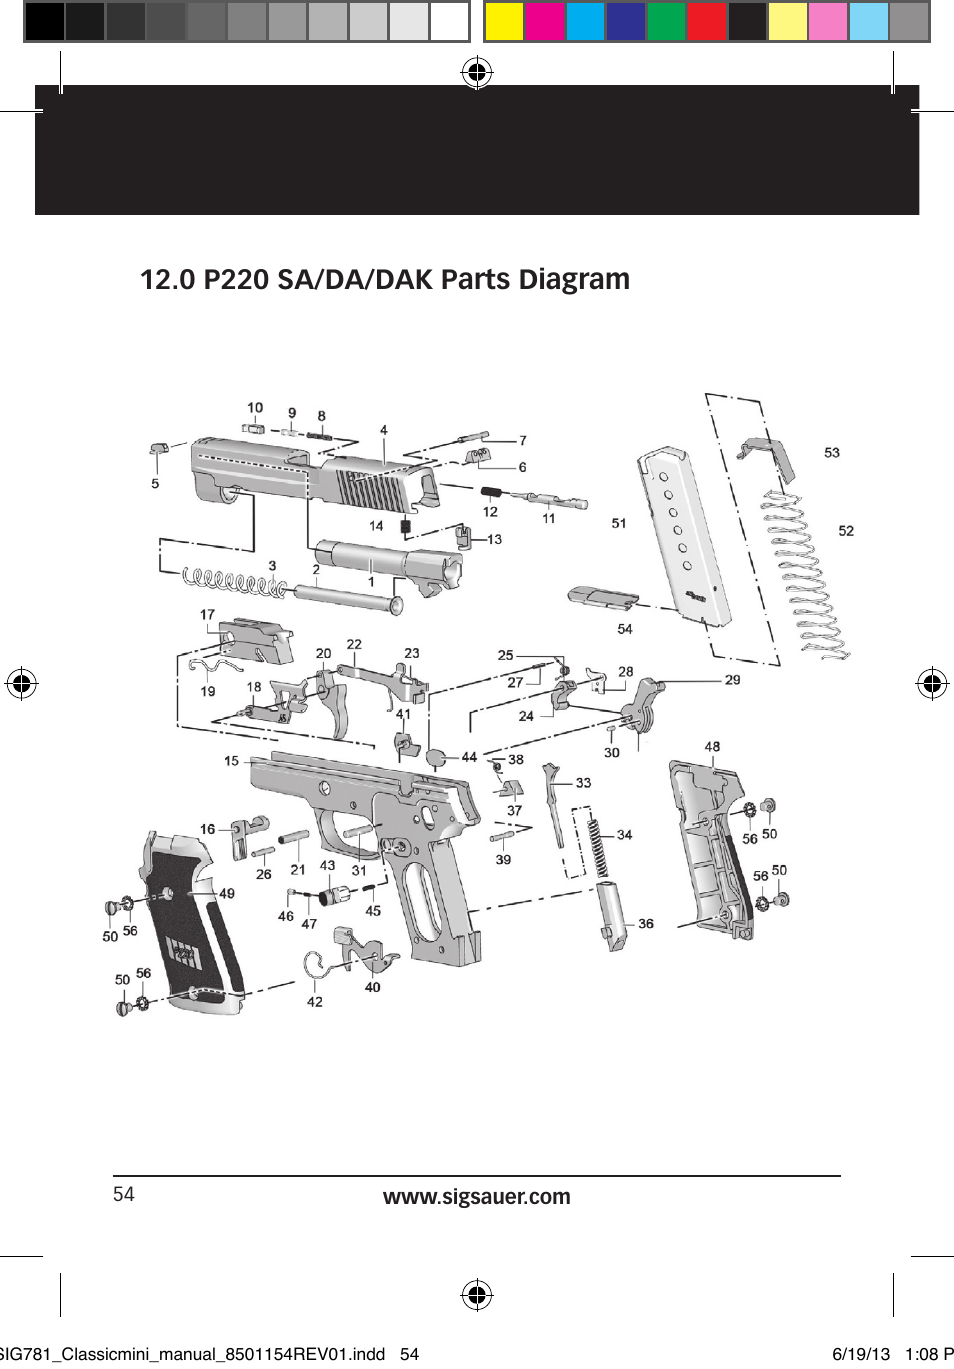 Astounding Sig P226 Parts Diagram Images Best Image